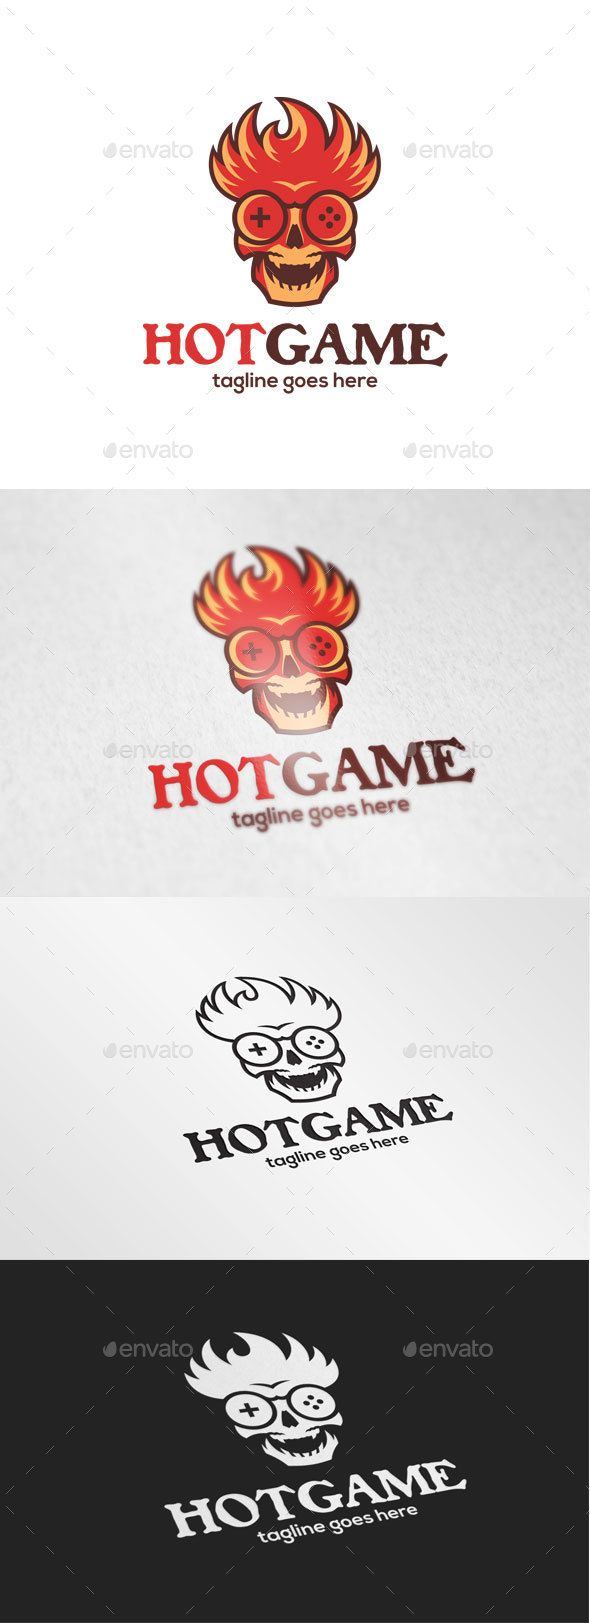 Fire Skull Game Logo Template Vector EPS, AI Illustrator. Download here: http://graphicriver.net/item/fire-skull-game-logo/15529999?ref=ksioks